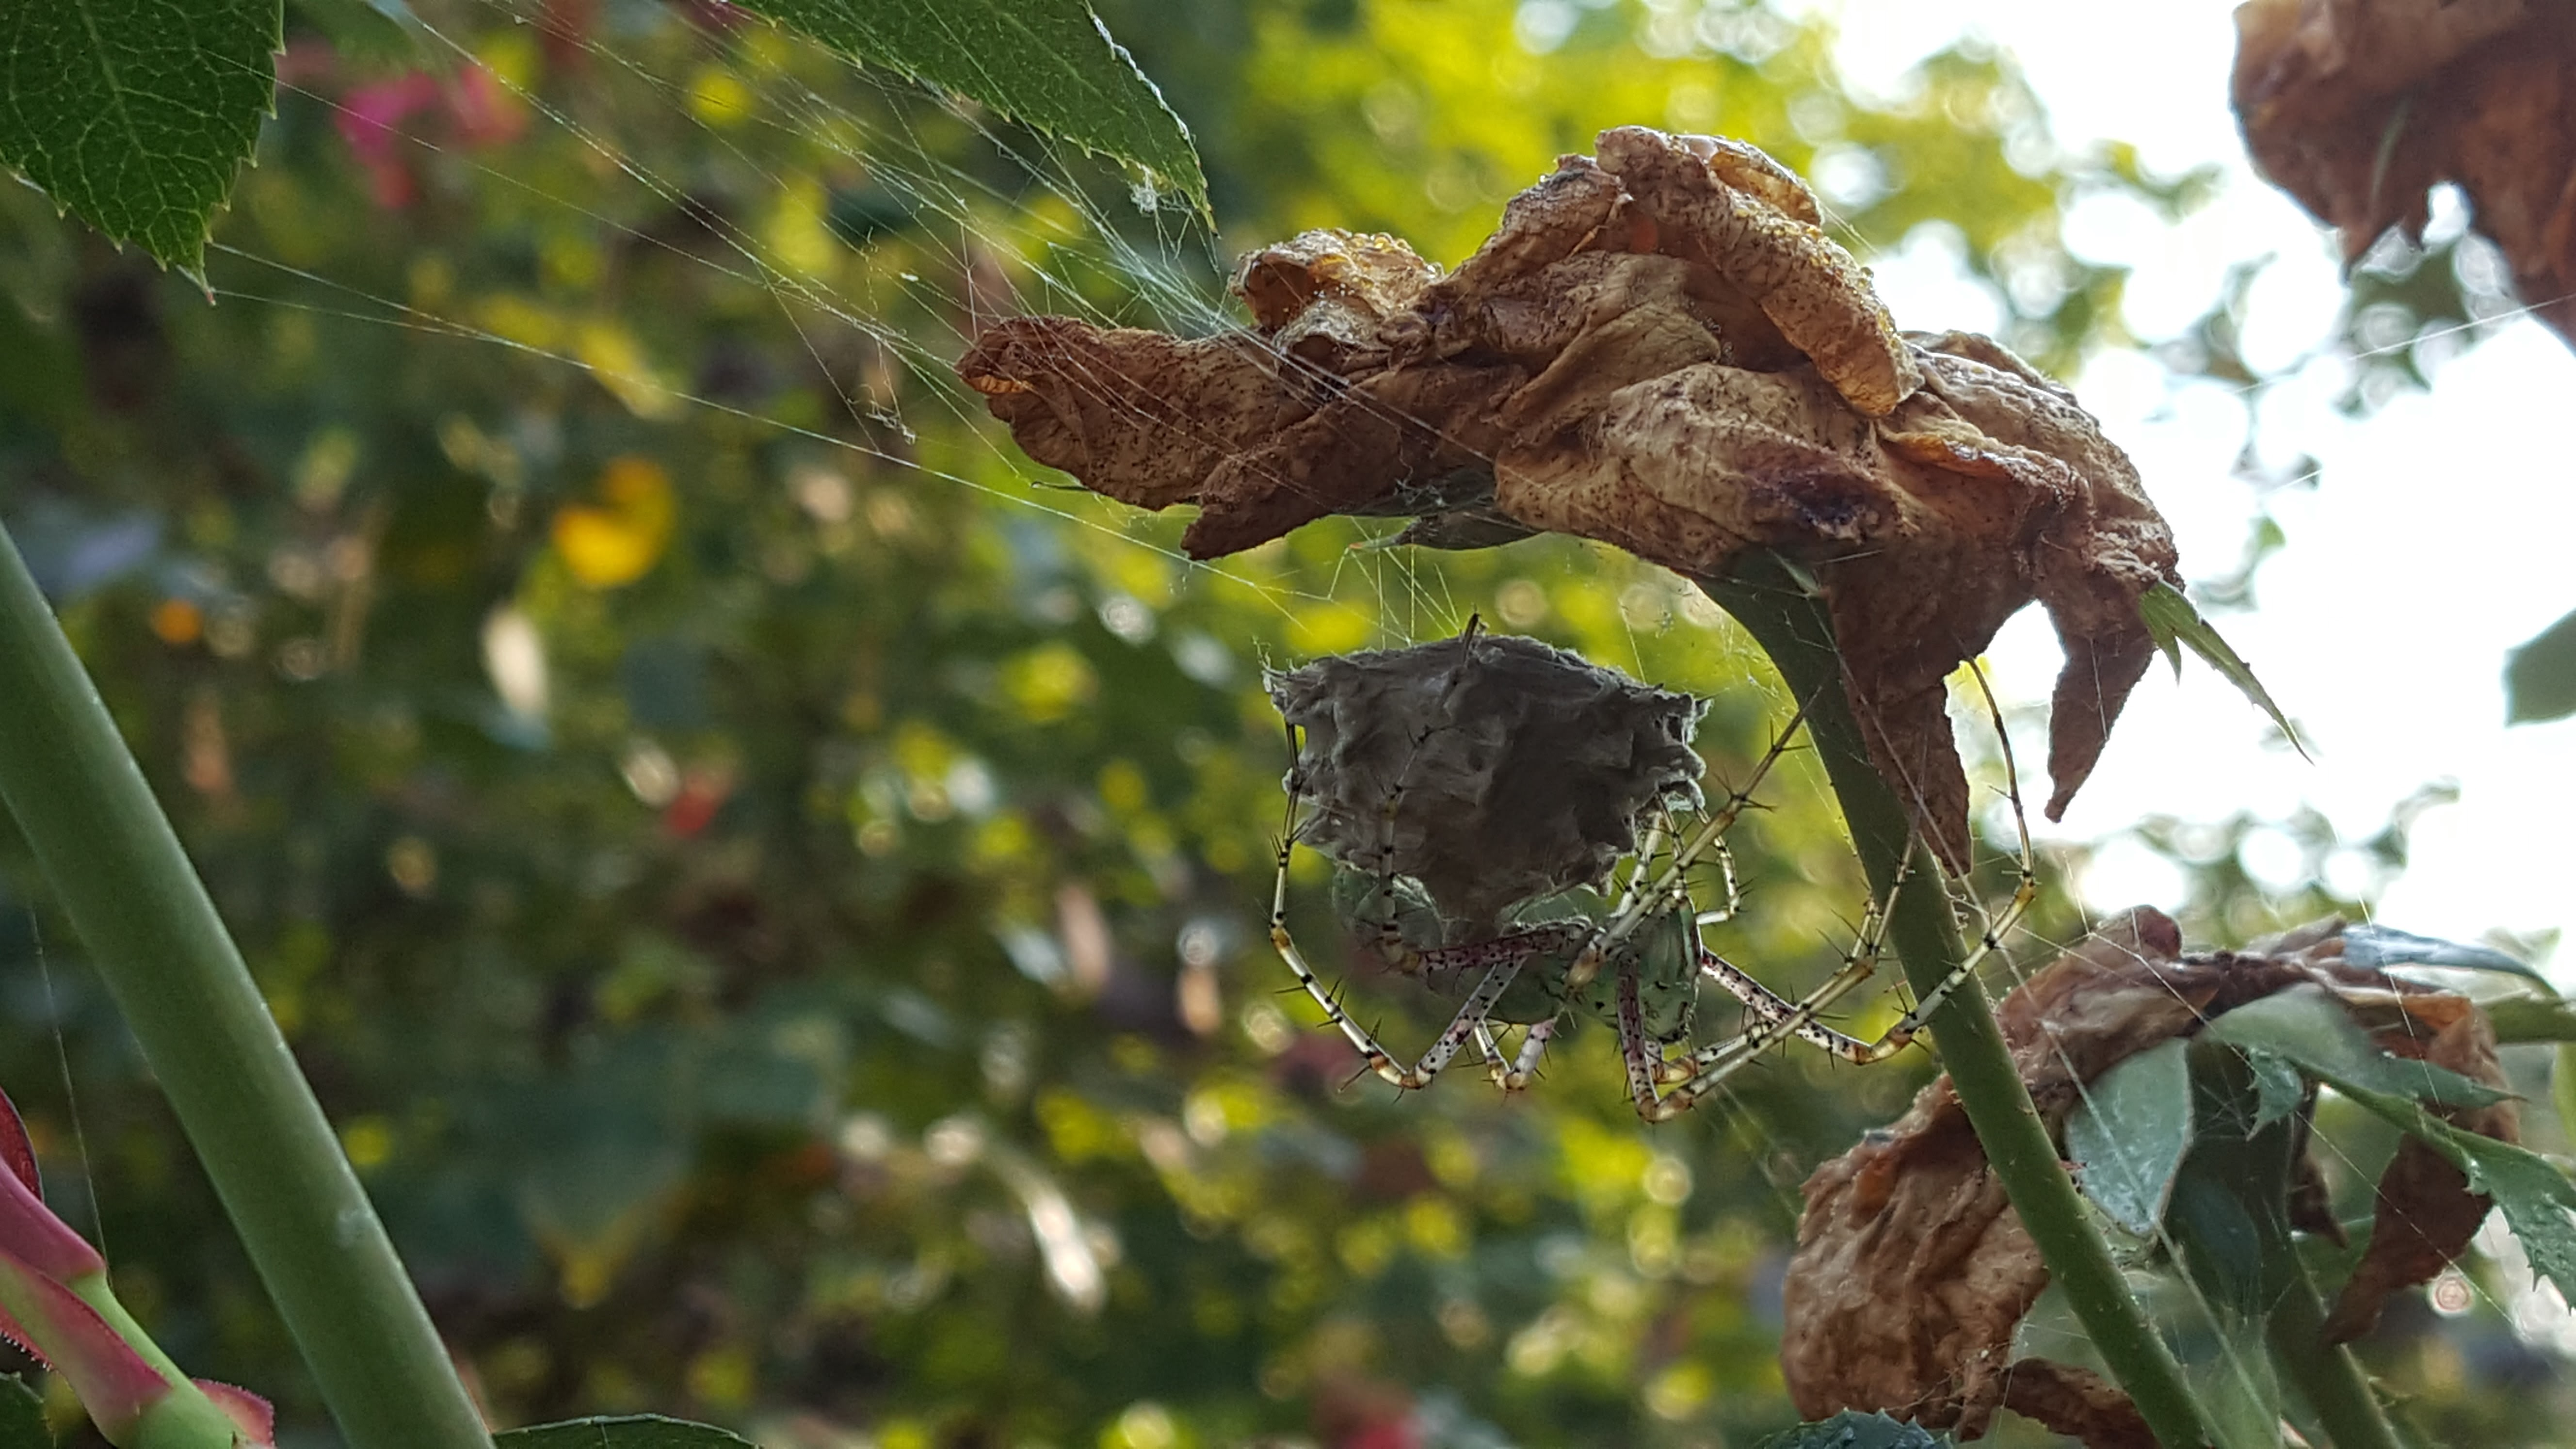 #2 Green Lynx Spider with Egg Sac, August 22, 2017